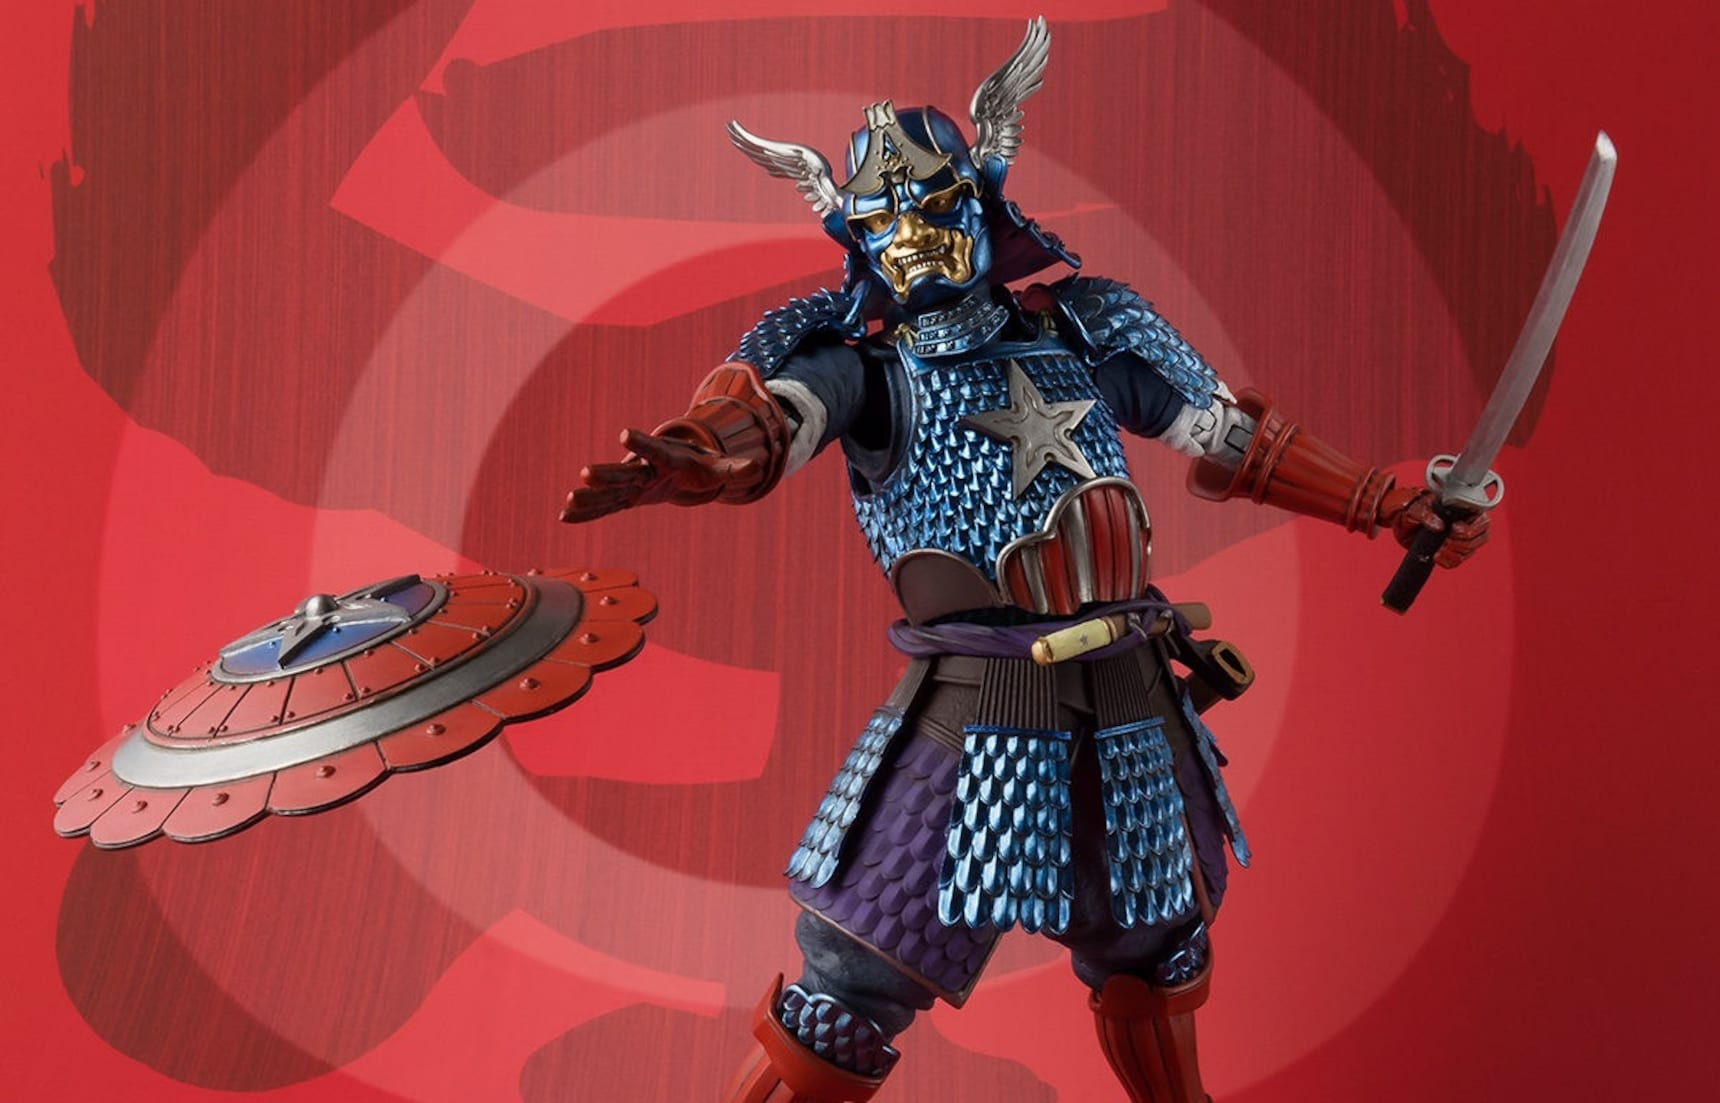 Captain America Turns Samurai Warrior